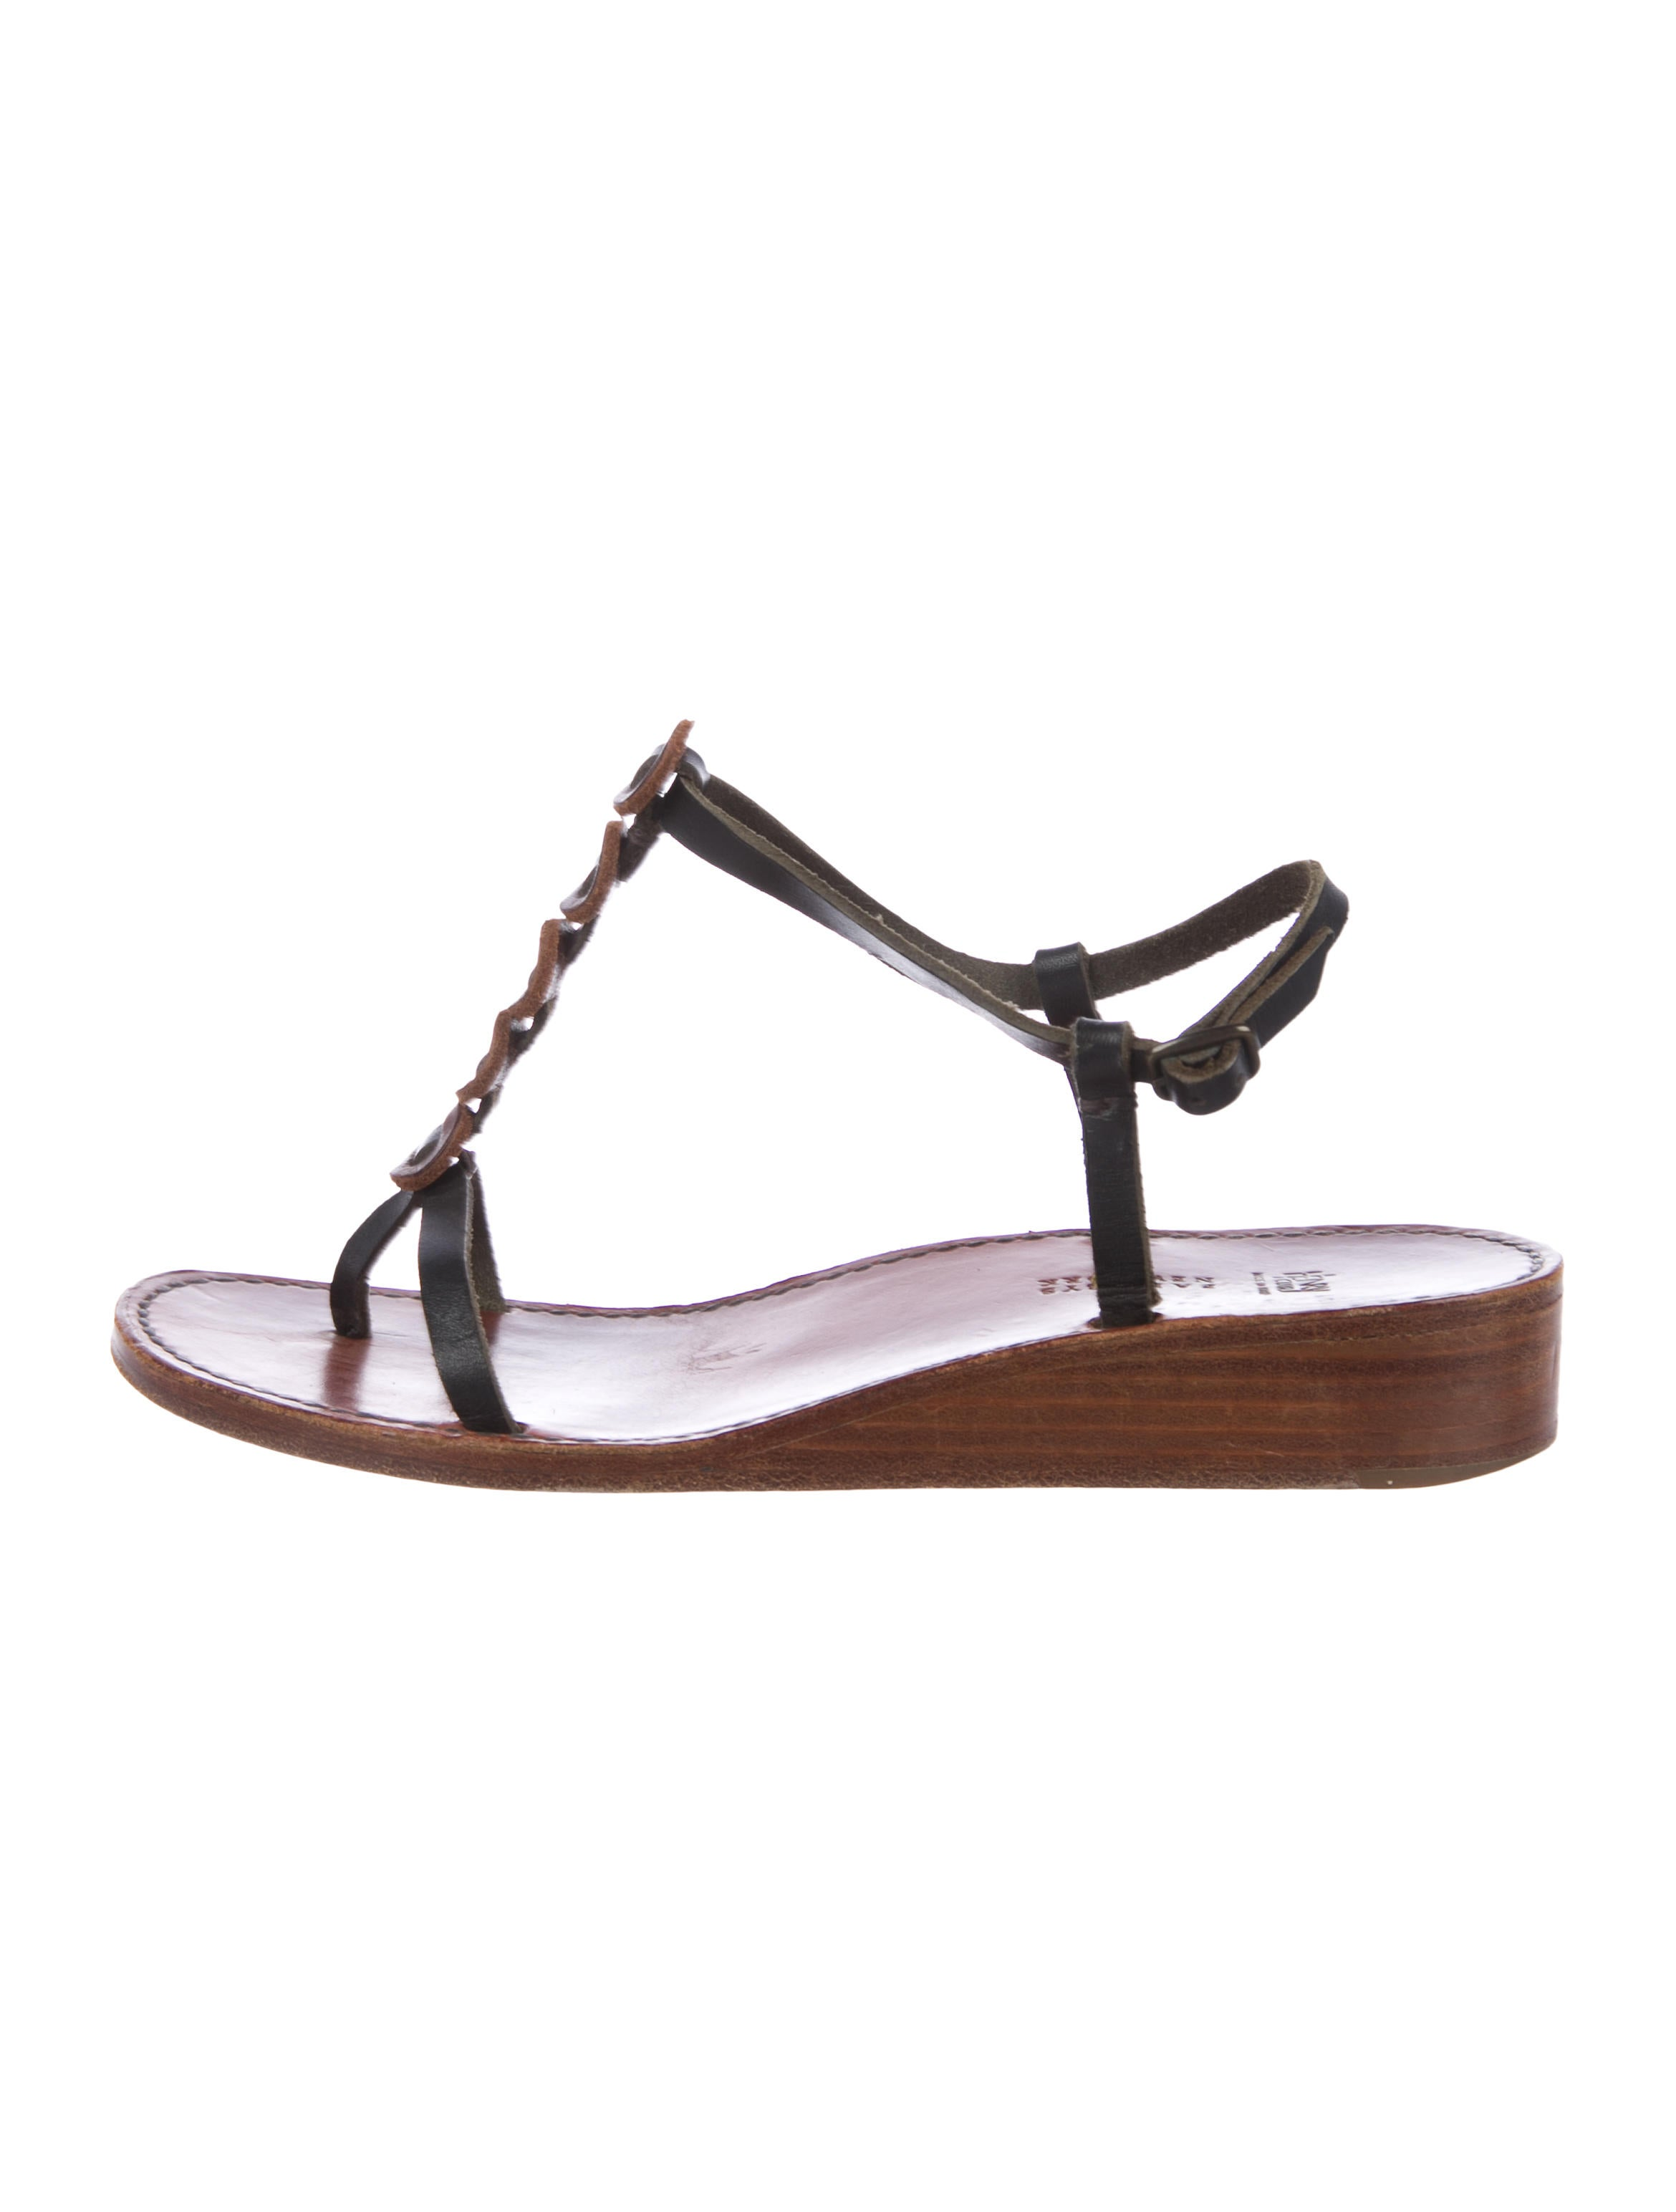 free shipping cheap Henry Cuir Leather Ankle Strap Sandals cheap sale outlet store clearance discount enjoy 8C2RPO6Y